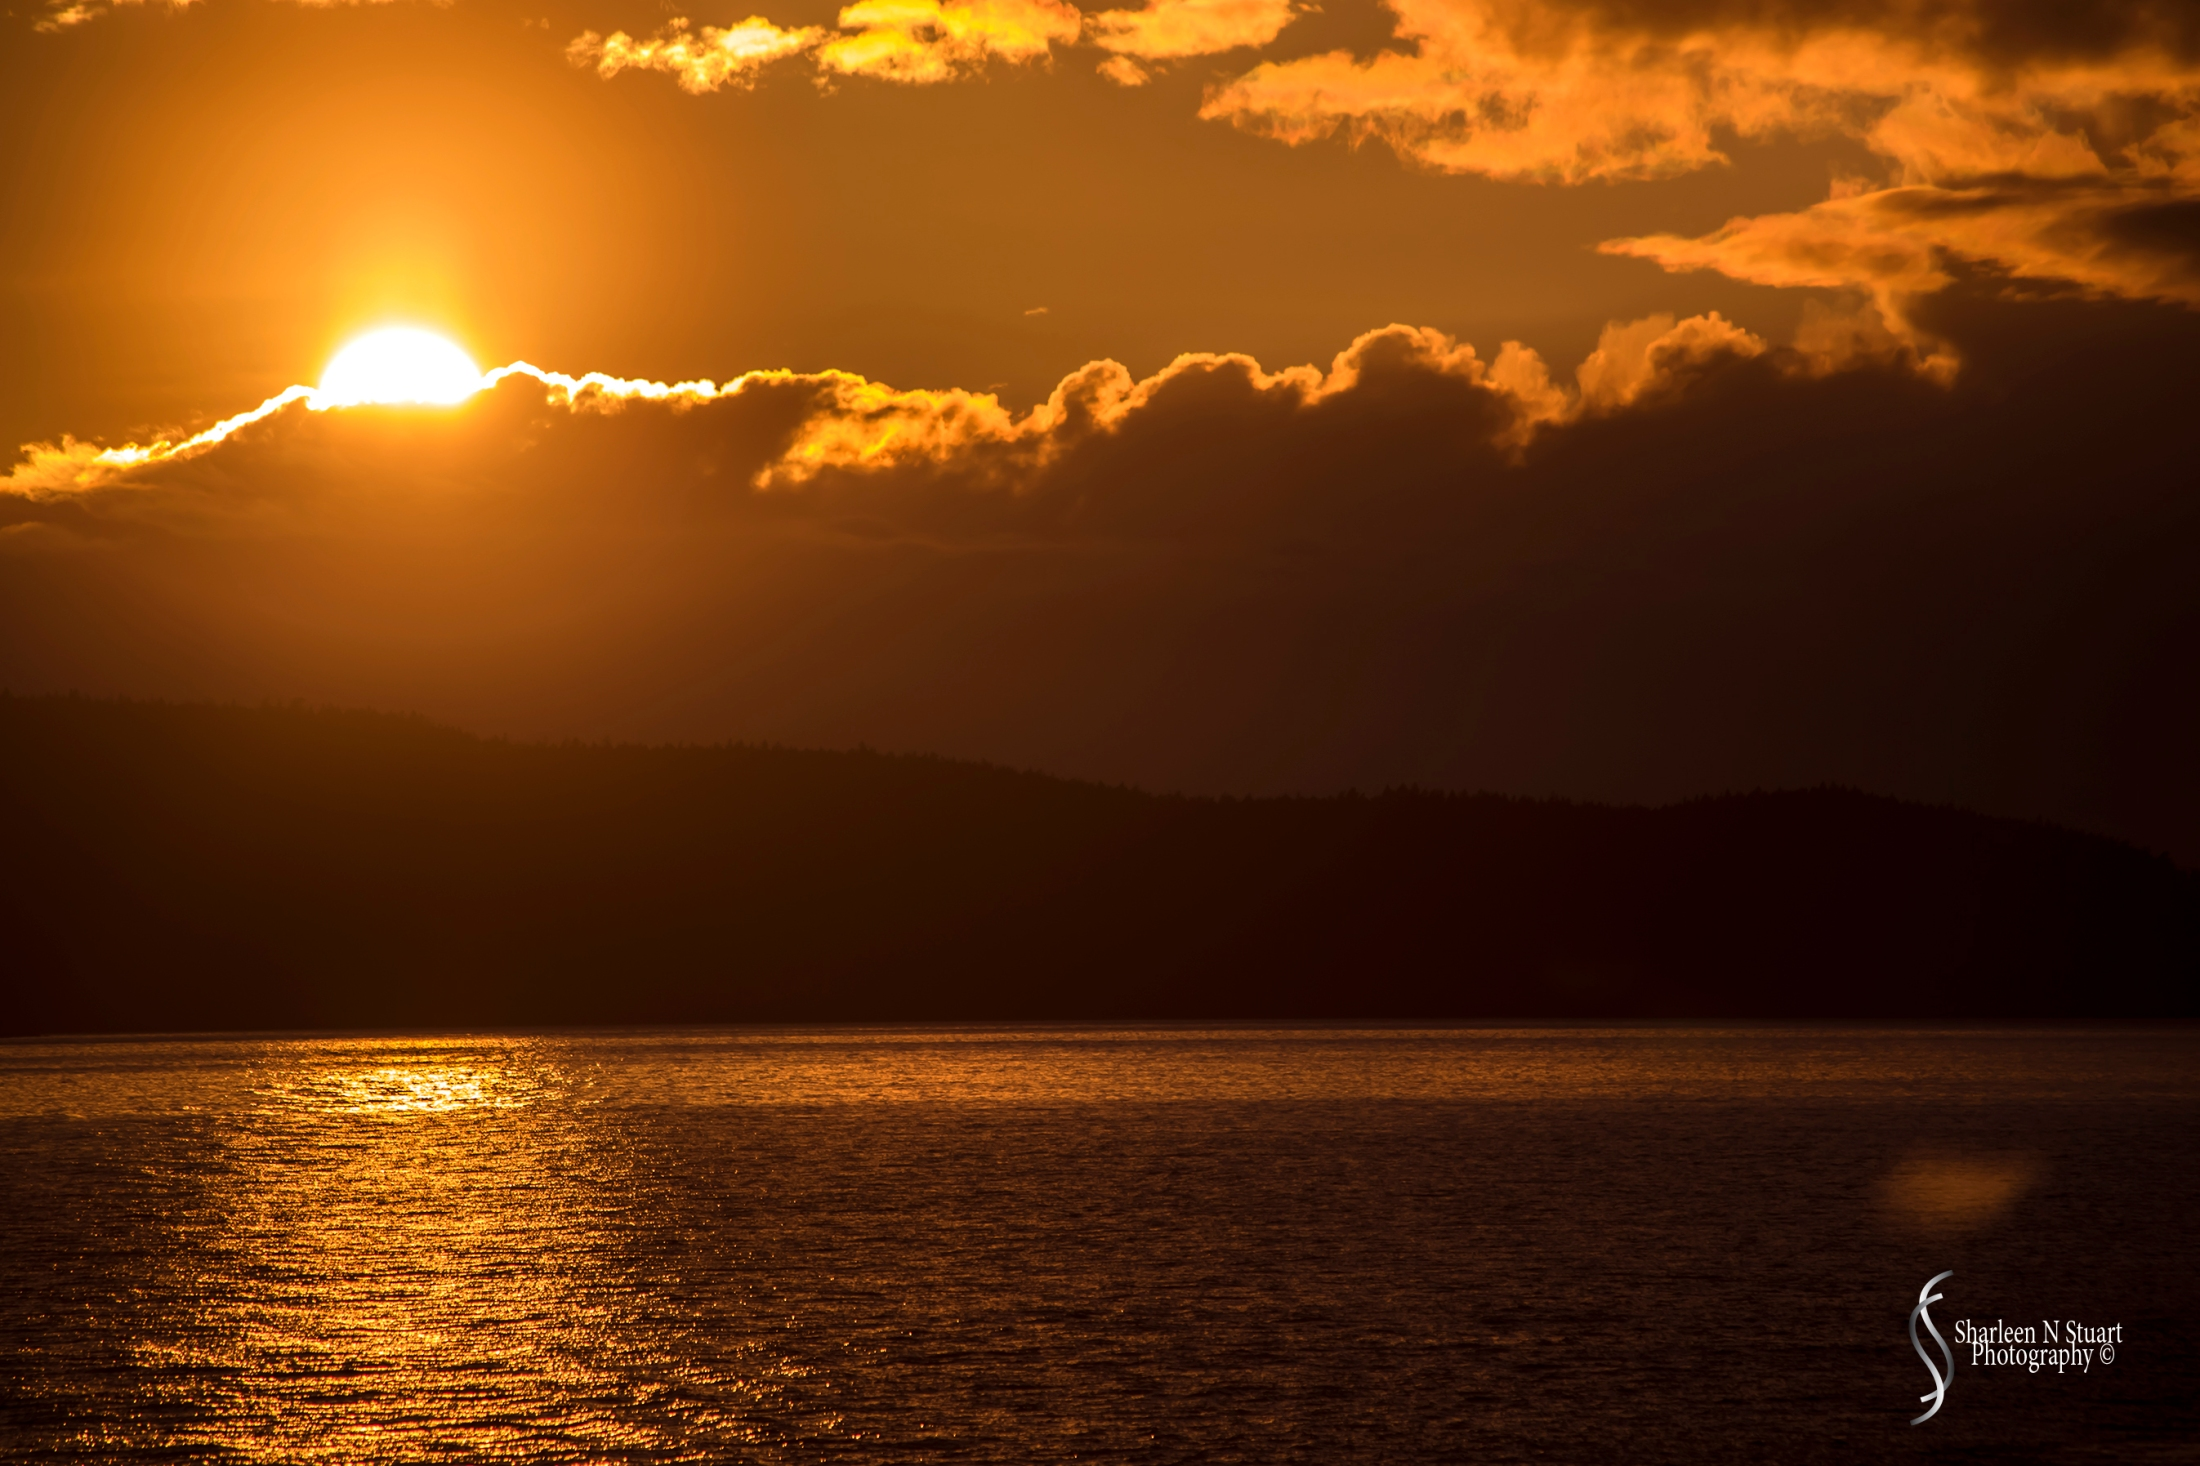 Sunset from the ferry on the trip back from Friday Harbor to Anacortes